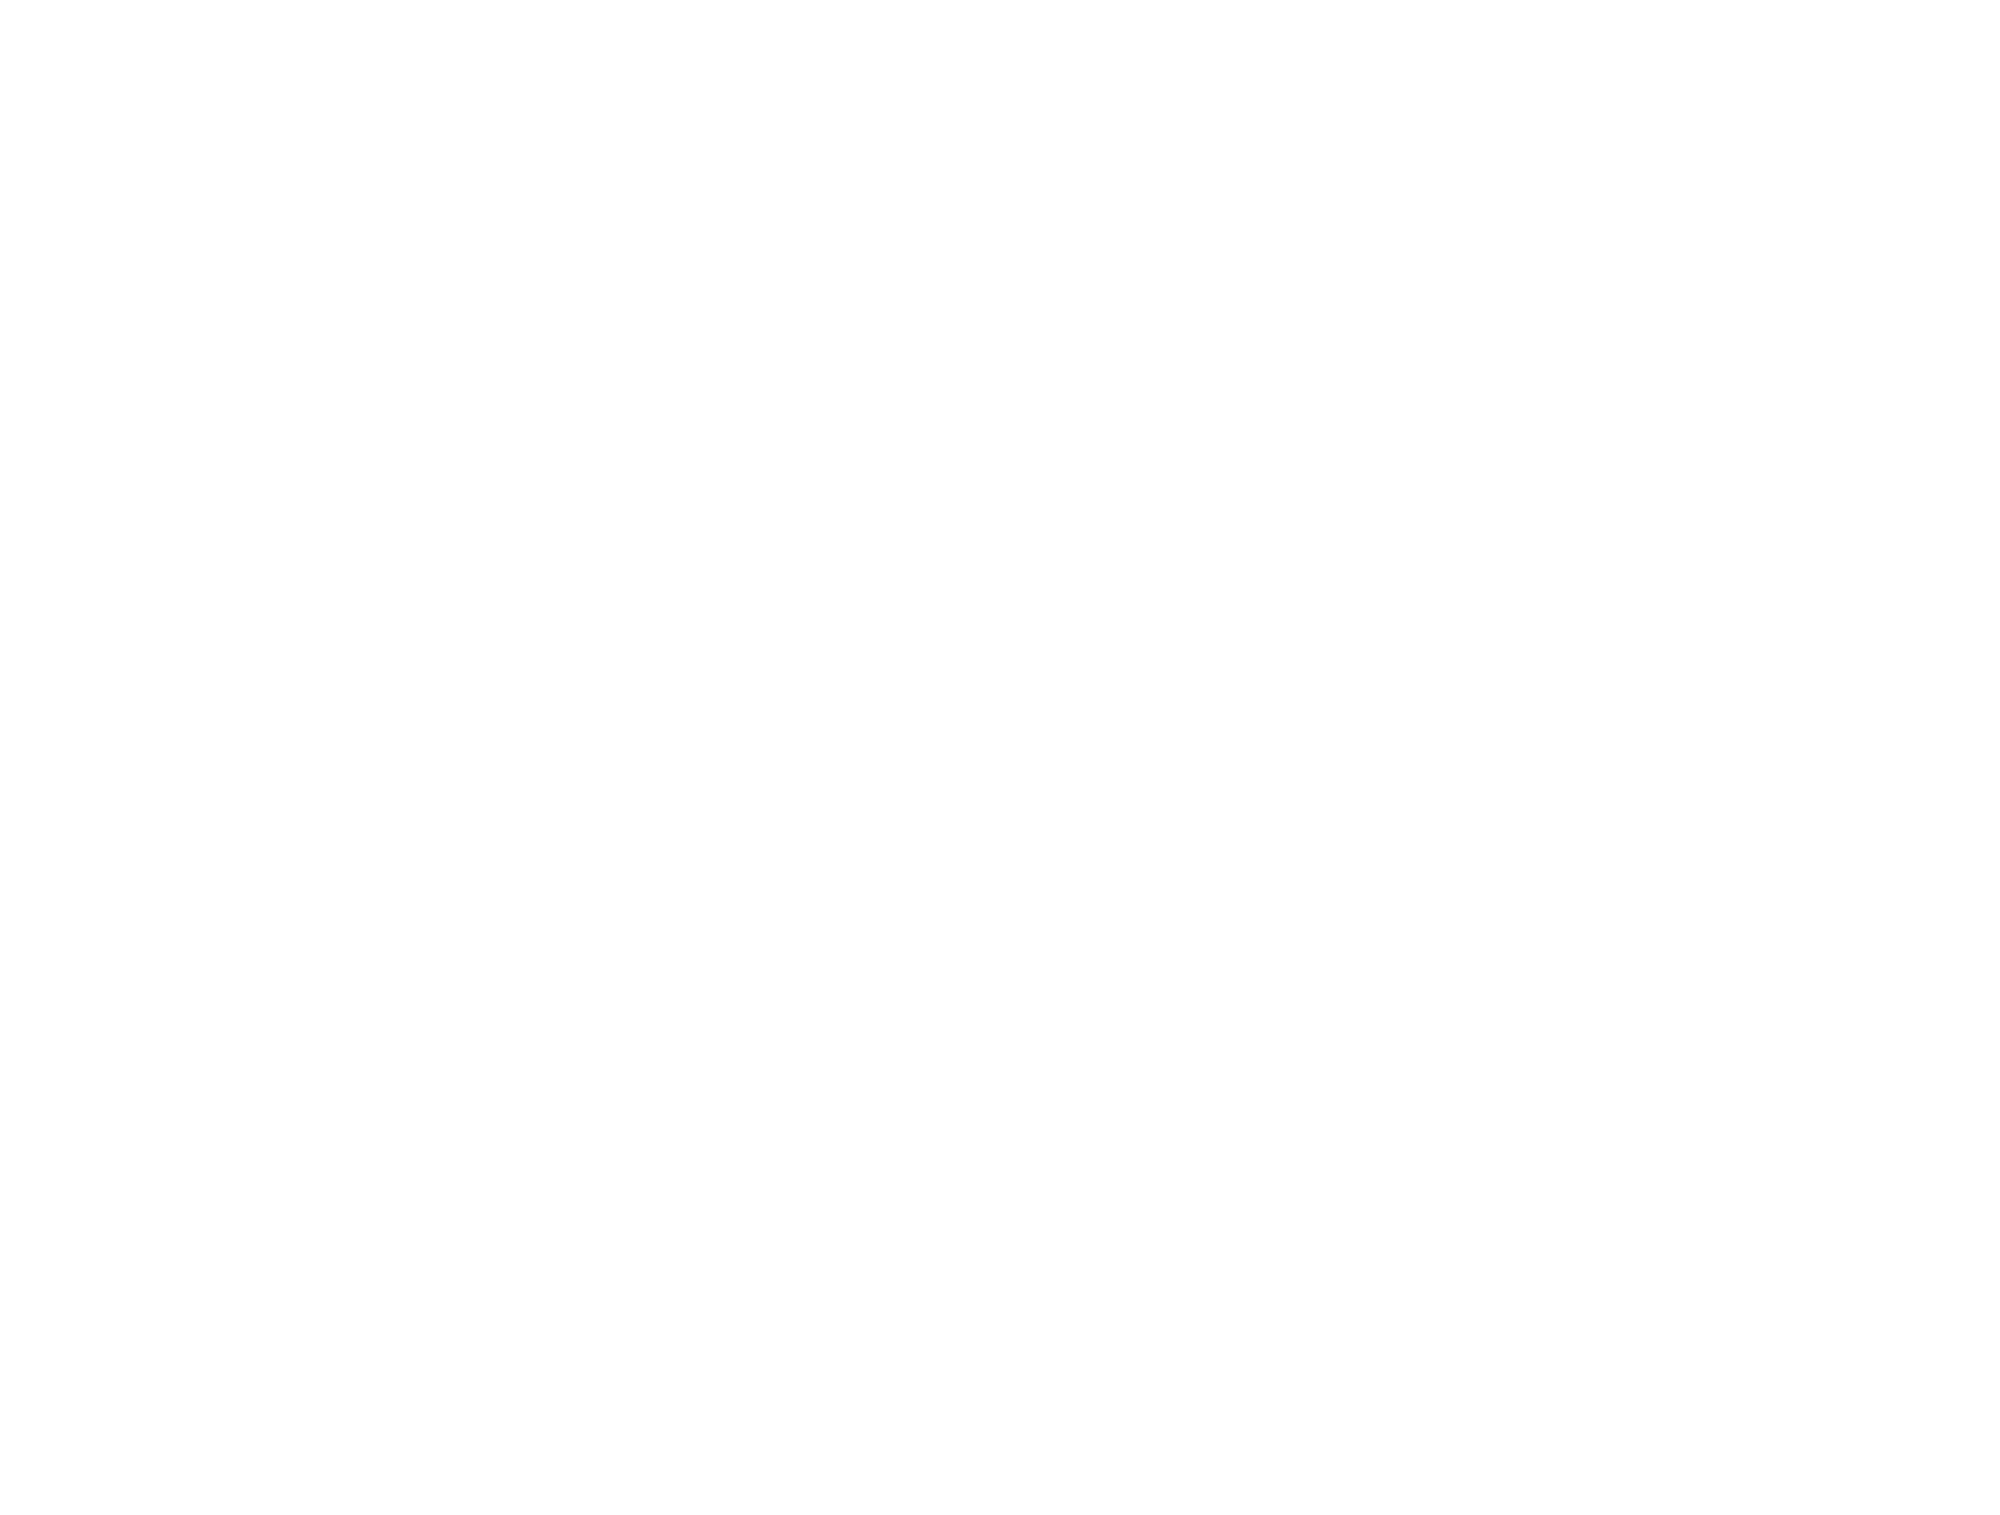 Networkify-logo-white (1).png